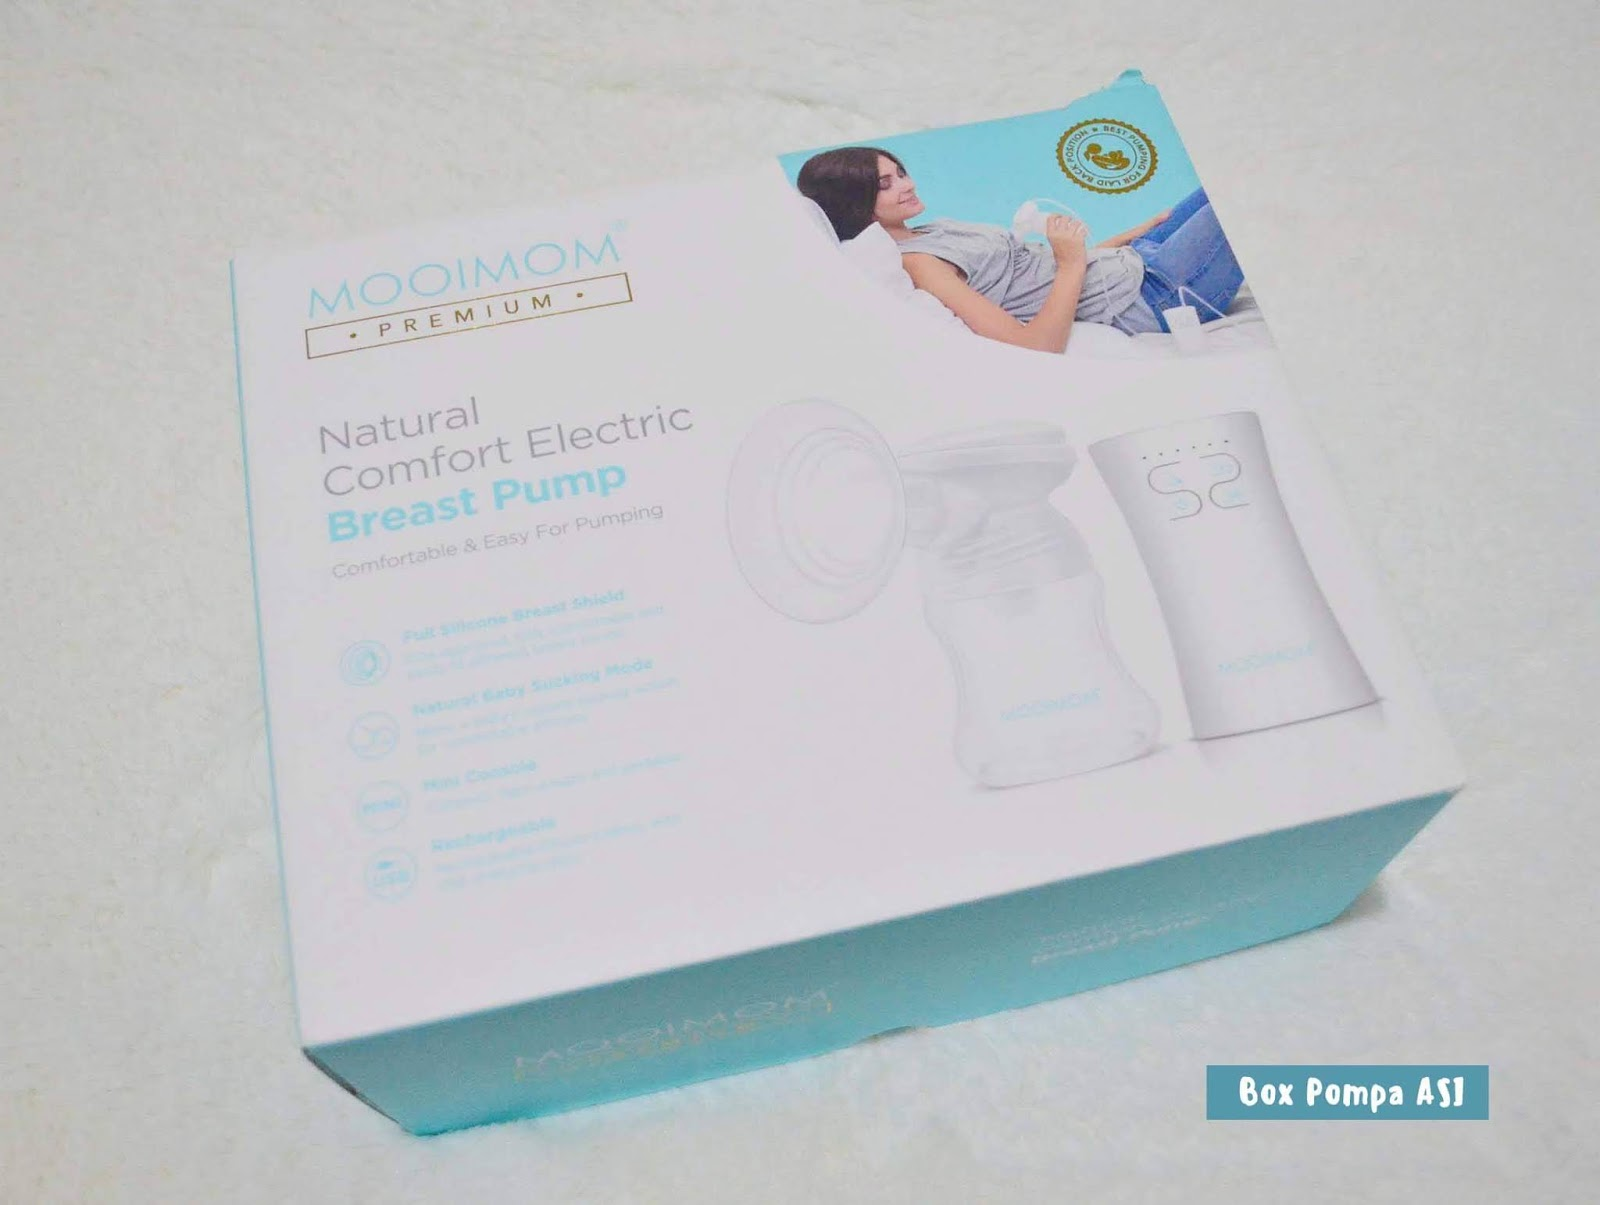 review pompa asi mooimom, review pompa asi silicone mooimom, review pompa asi elektrik mooimom, review pompa asi yang bagus, review pompa asi yang murah, review pompa asi yang nyaman, review pompa asi yang paling baik, review pompa asi yang murah dan bagus, review pompa asi elektrik yang bagus, review pompa asi elektrik yang tidak bikin sakit, review pompa asi medela harmony, review pompa asi medela mini electric, review pompa asi spectra 9s, review pompa asi elektrik, review pompa asi manual